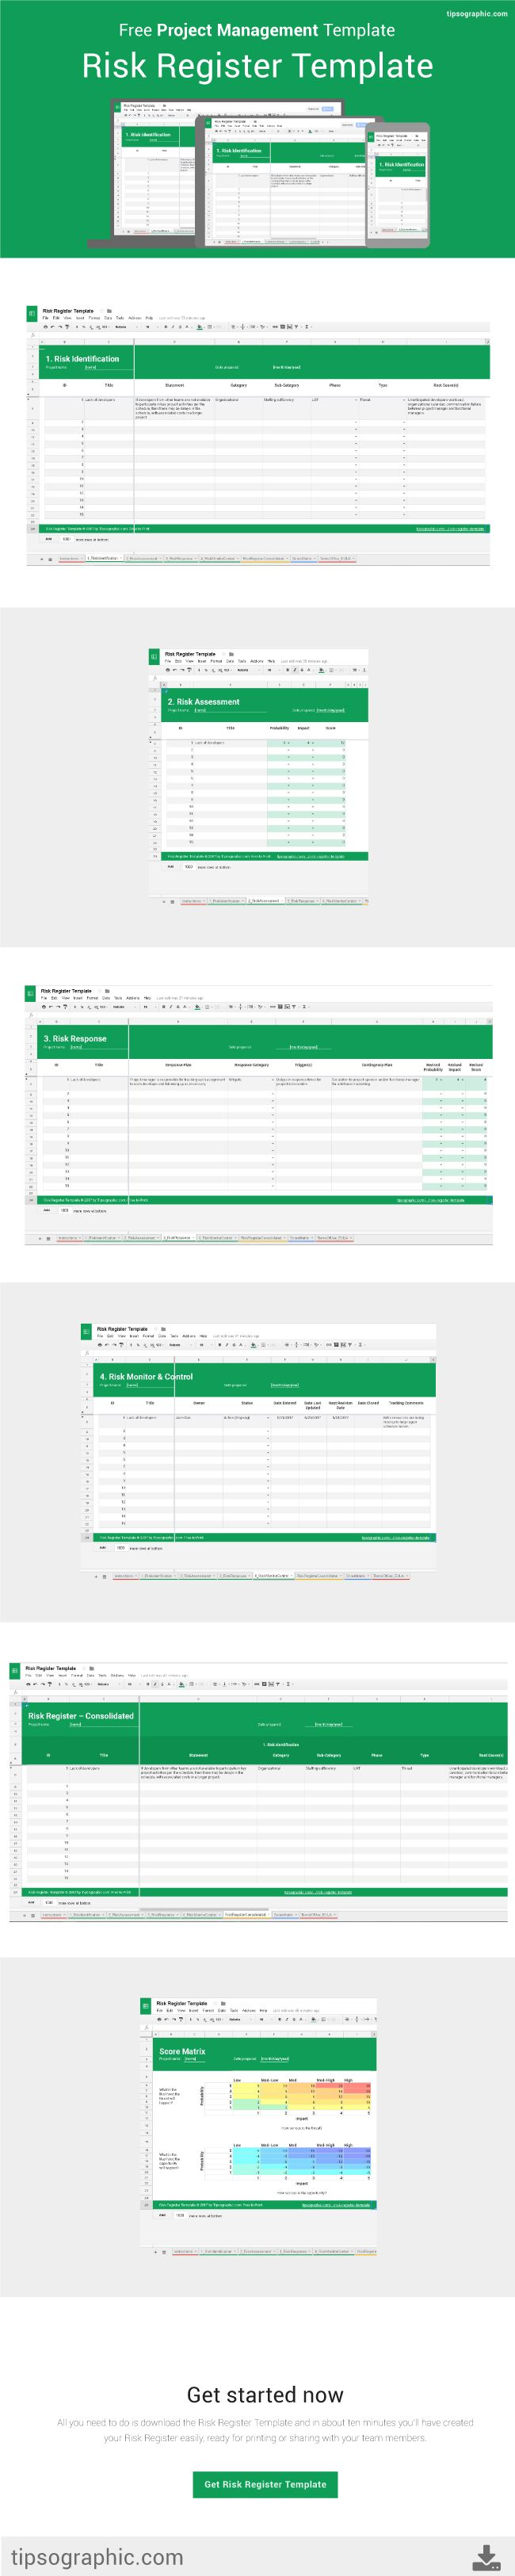 This template is designed to help you track information about identified risks over the course of a project using Google Sheets, Open Office, or Microsoft Excel. All for free.